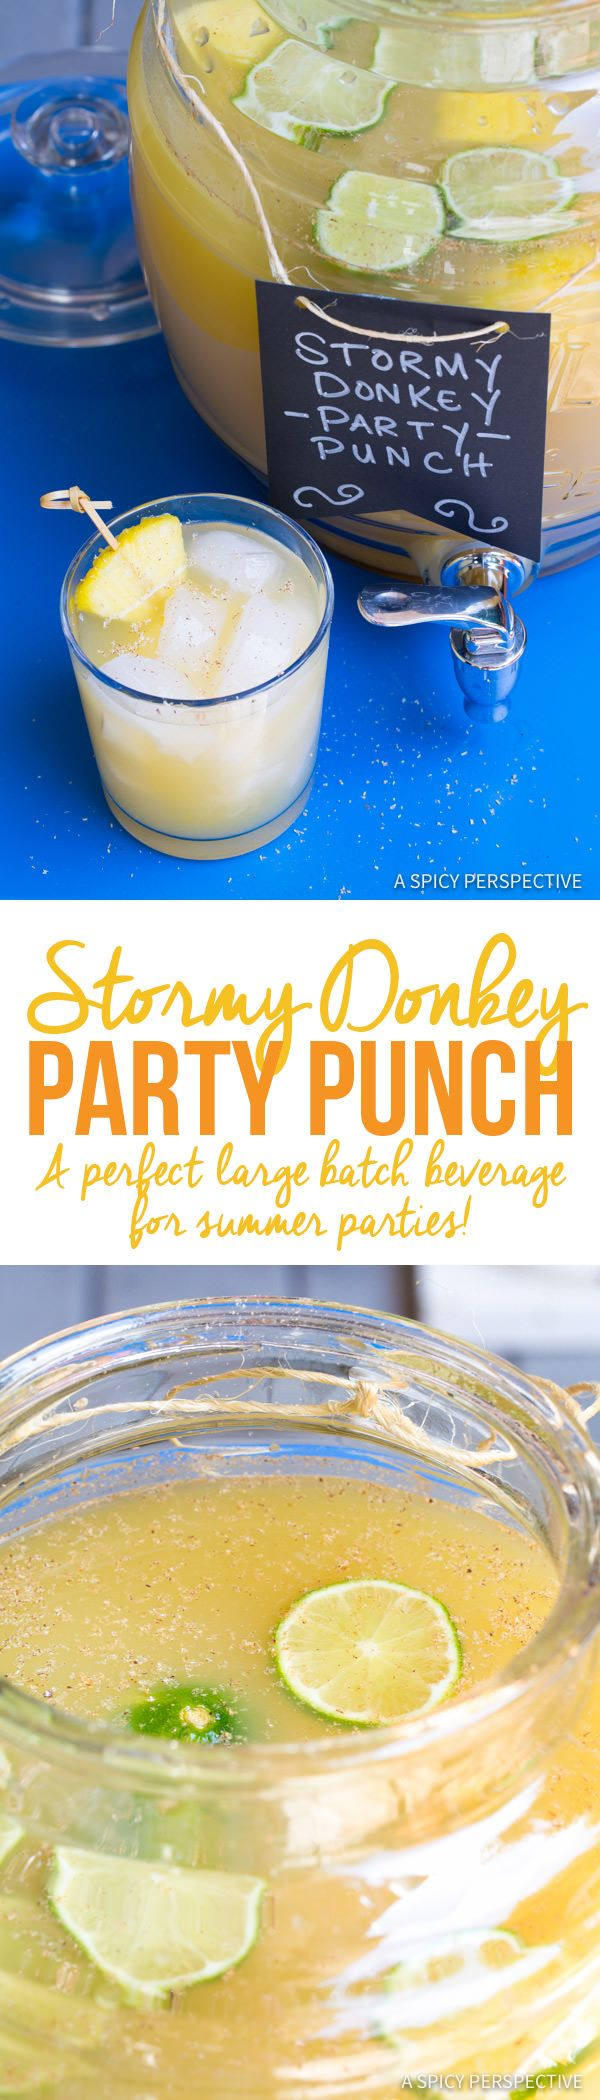 Sparkling Stormy Donkey Party Punch - Large Batch Cocktail for Summer Parties! |ASpicyPerspective.com